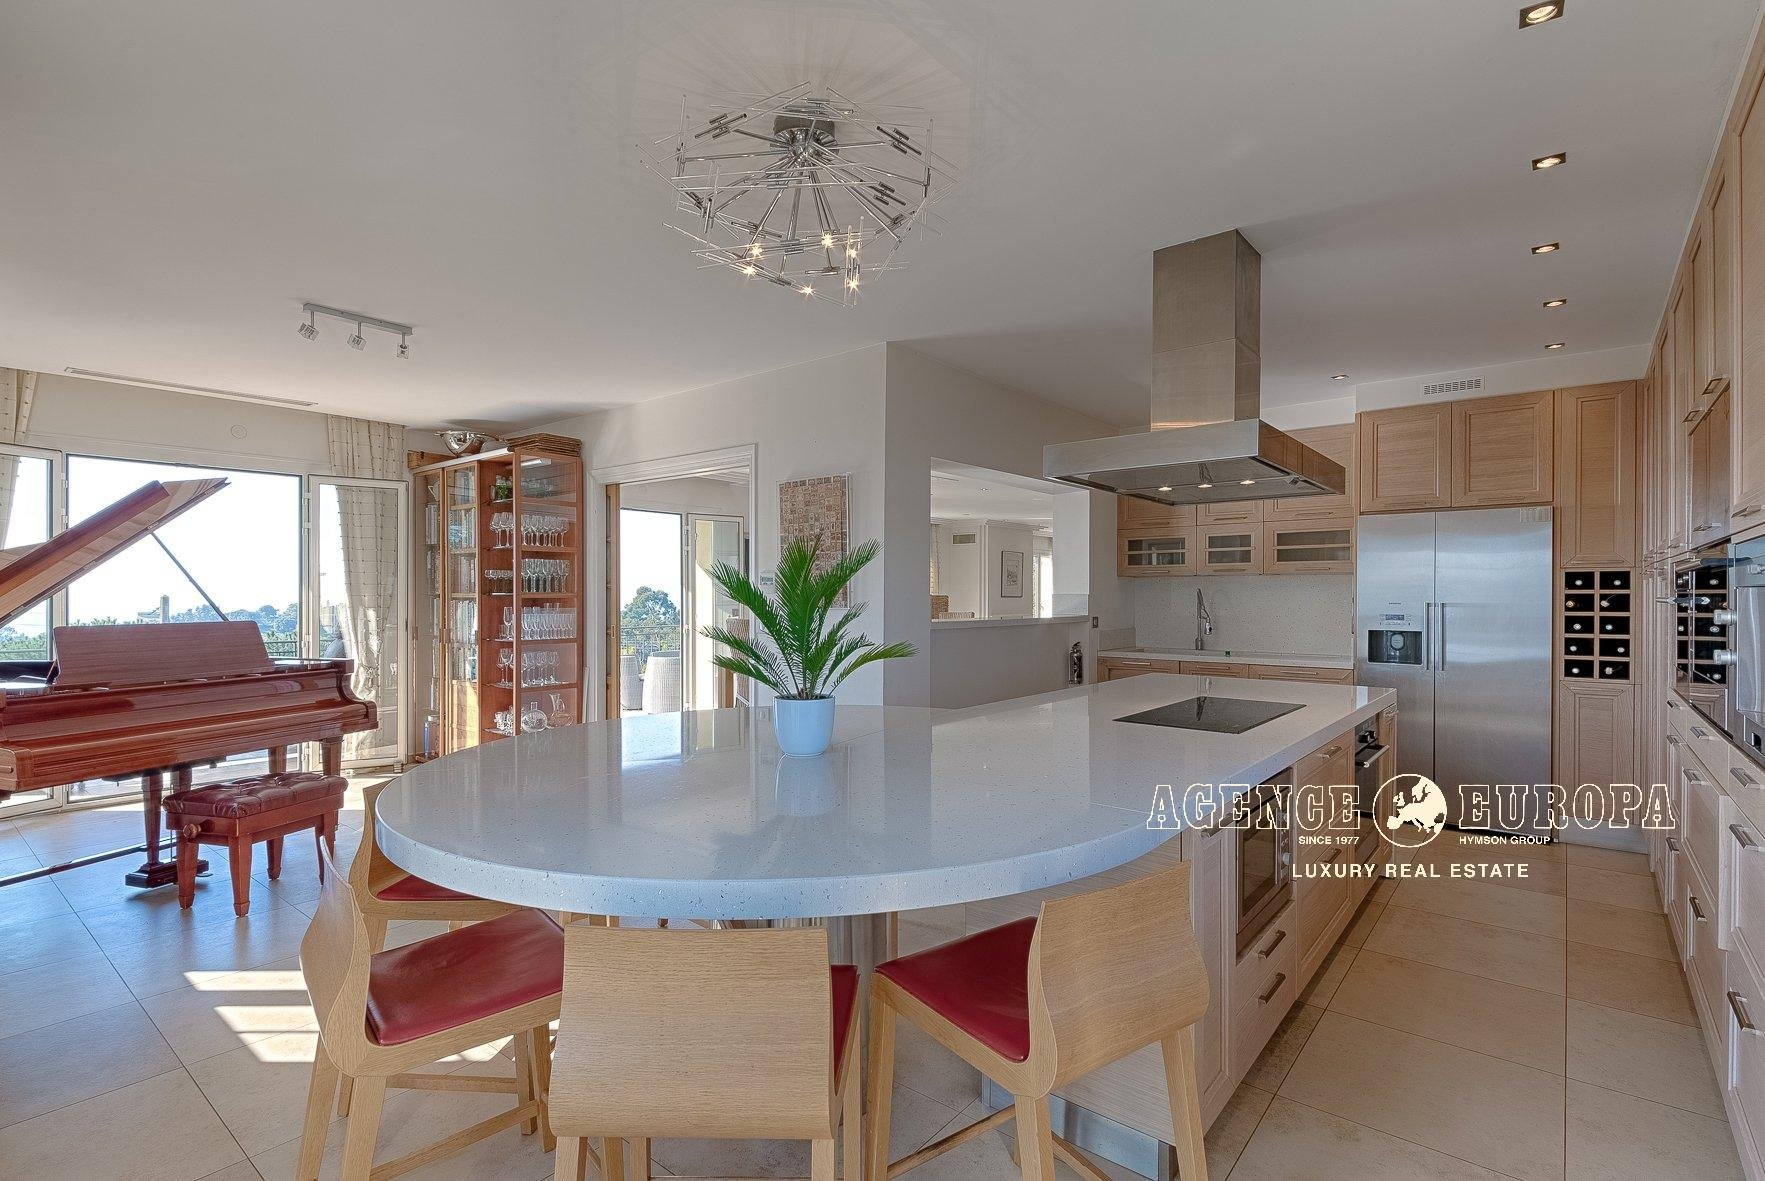 Stainless steel, natural light, kitchen bar, kitchen island